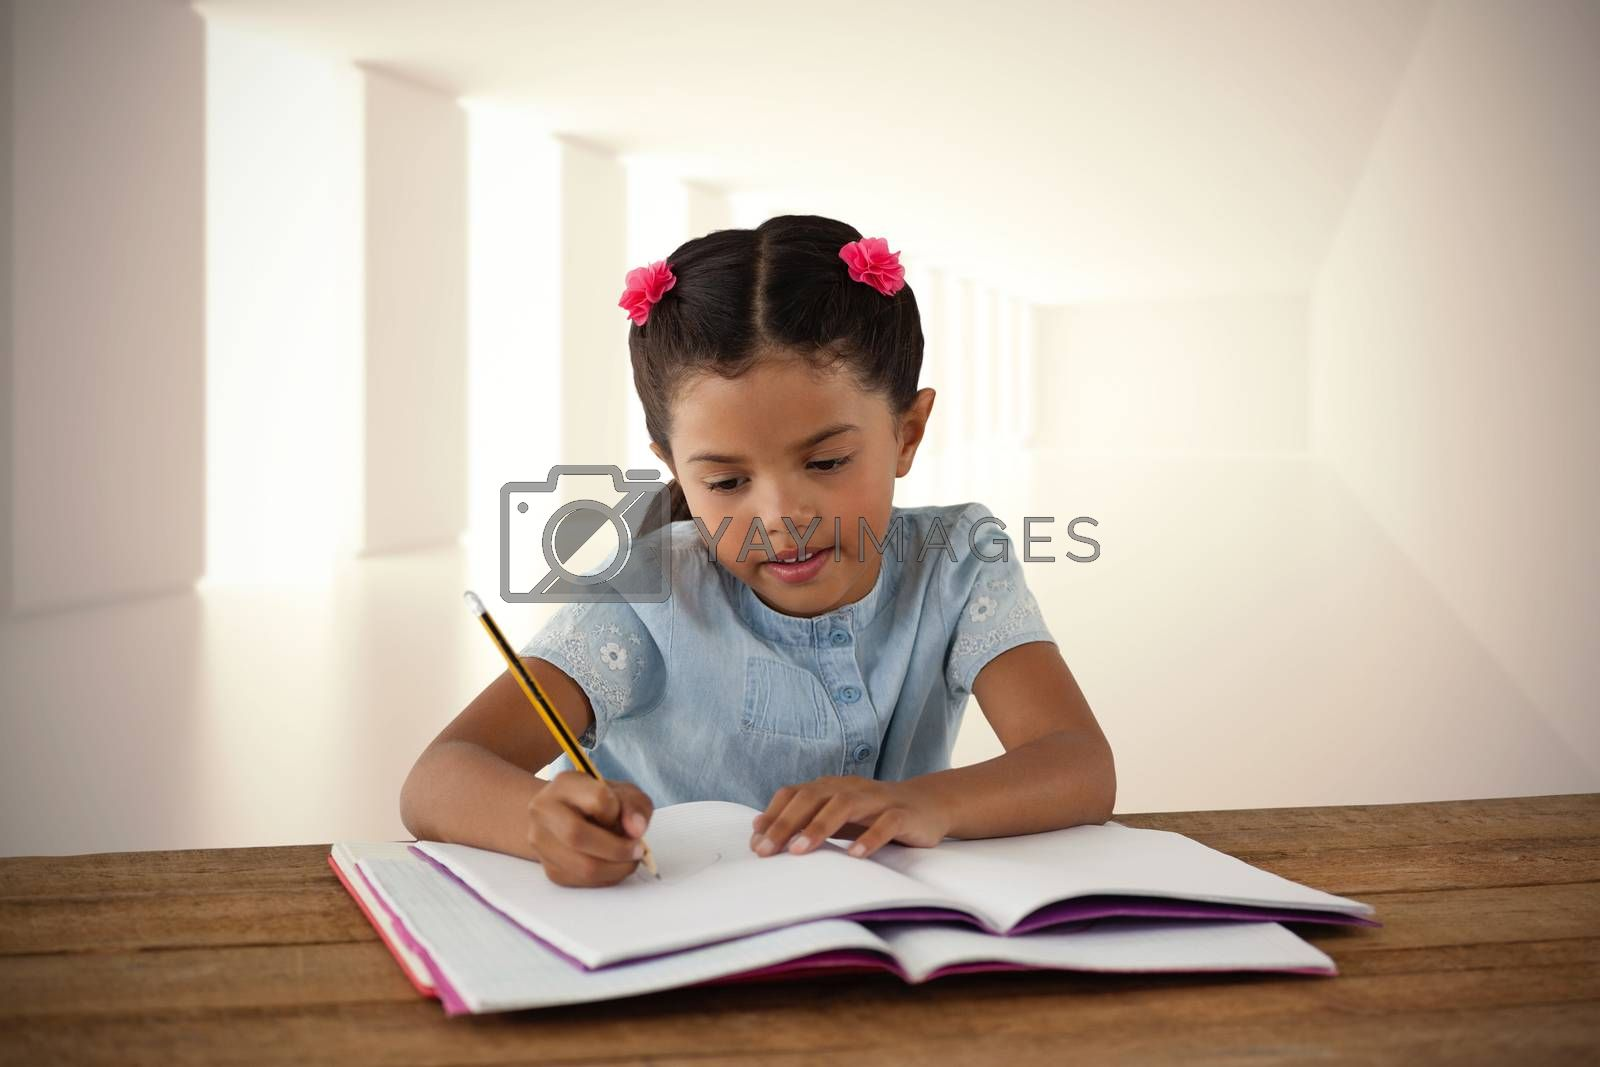 Composite image of girl writing in book at desk by Wavebreakmedia